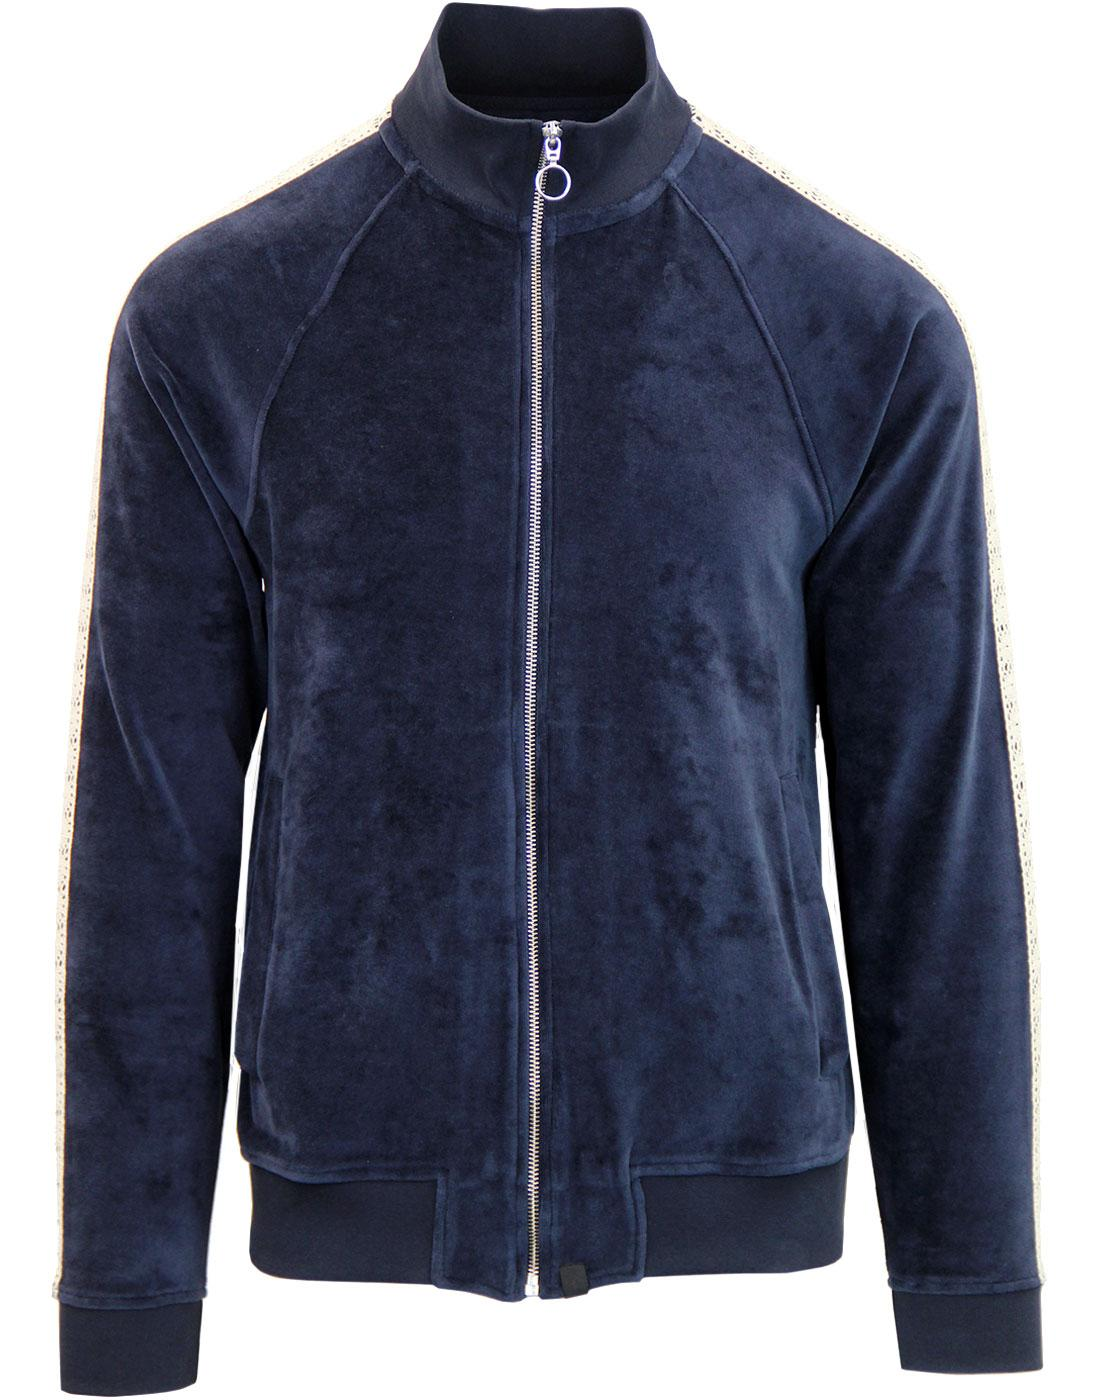 PRETTY GREEN Black Label Velour Lace Track Jacket